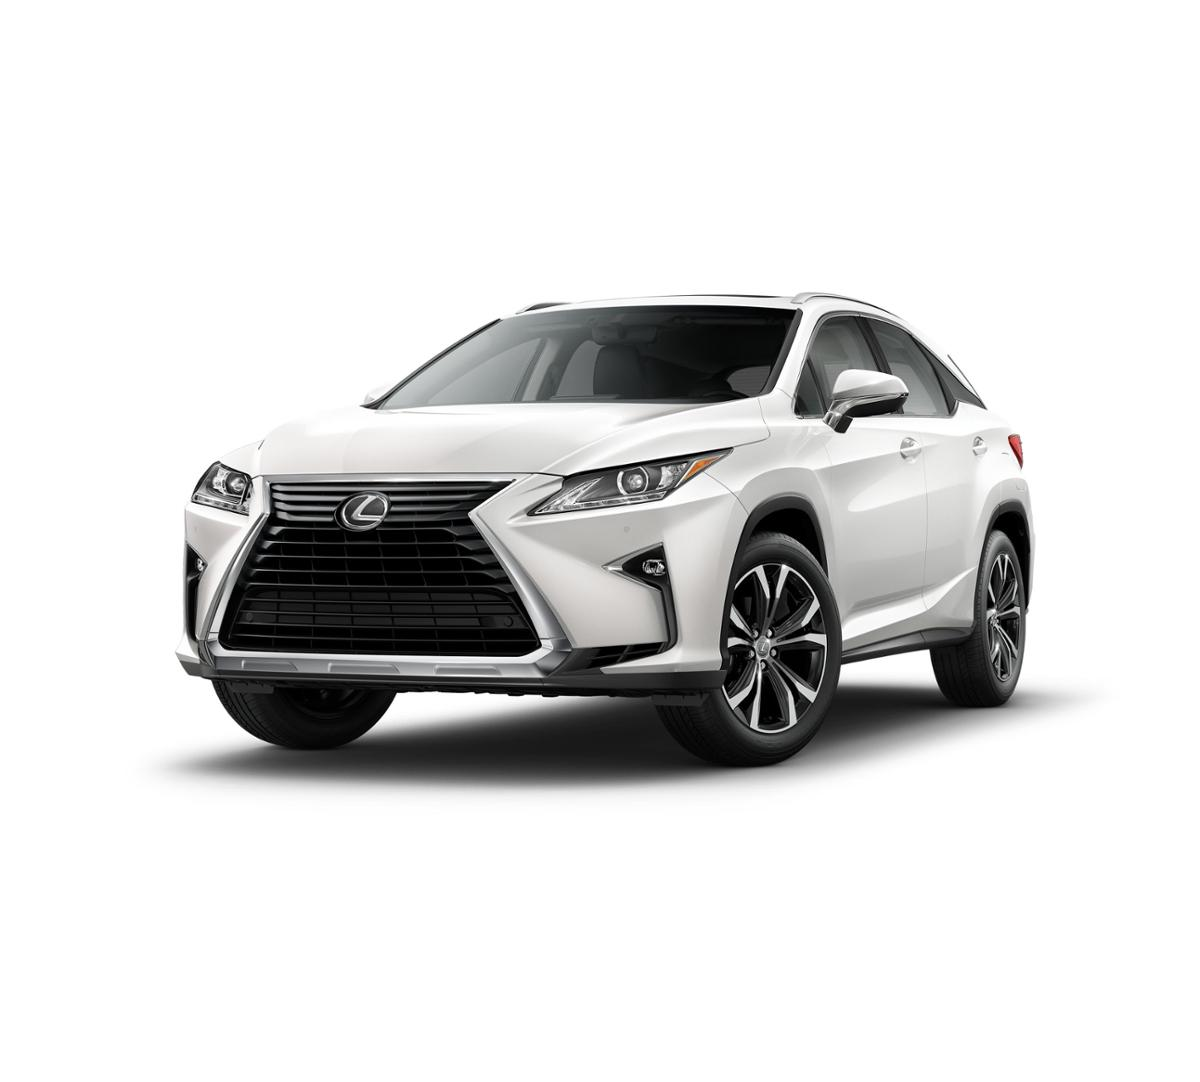 2019 Lexus RX 350 Vehicle Photo in Santa Barbara, CA 93105